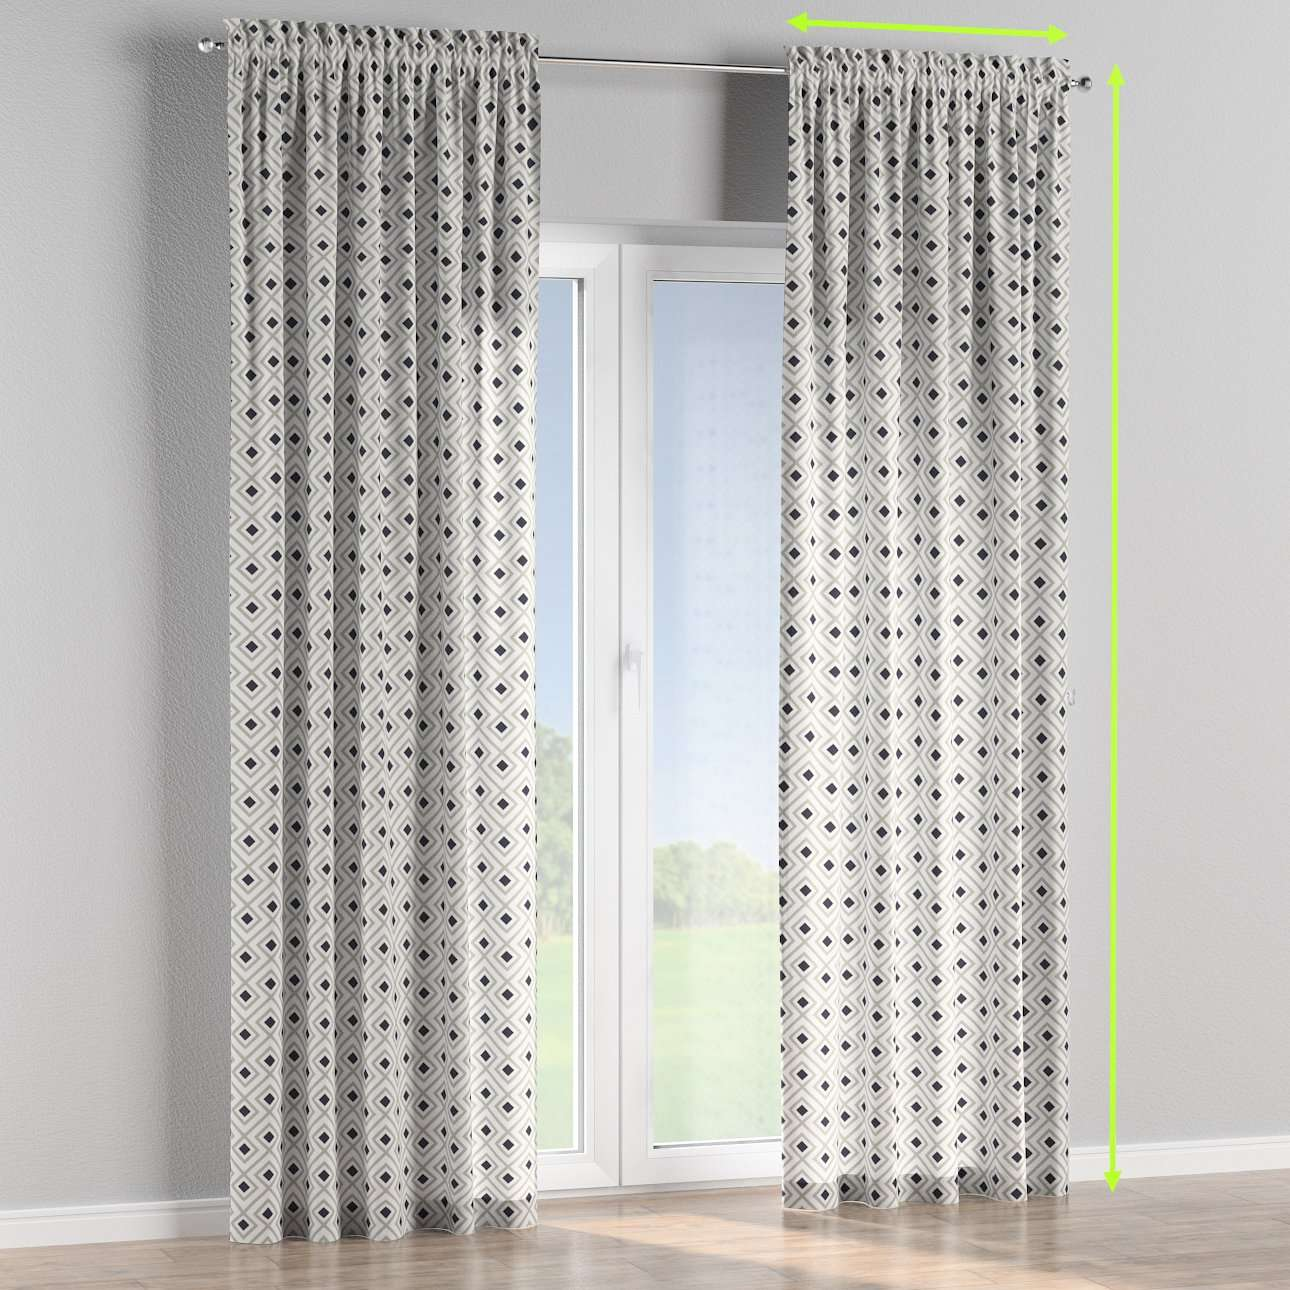 Slot and frill lined curtains in collection Geometric, fabric: 141-44